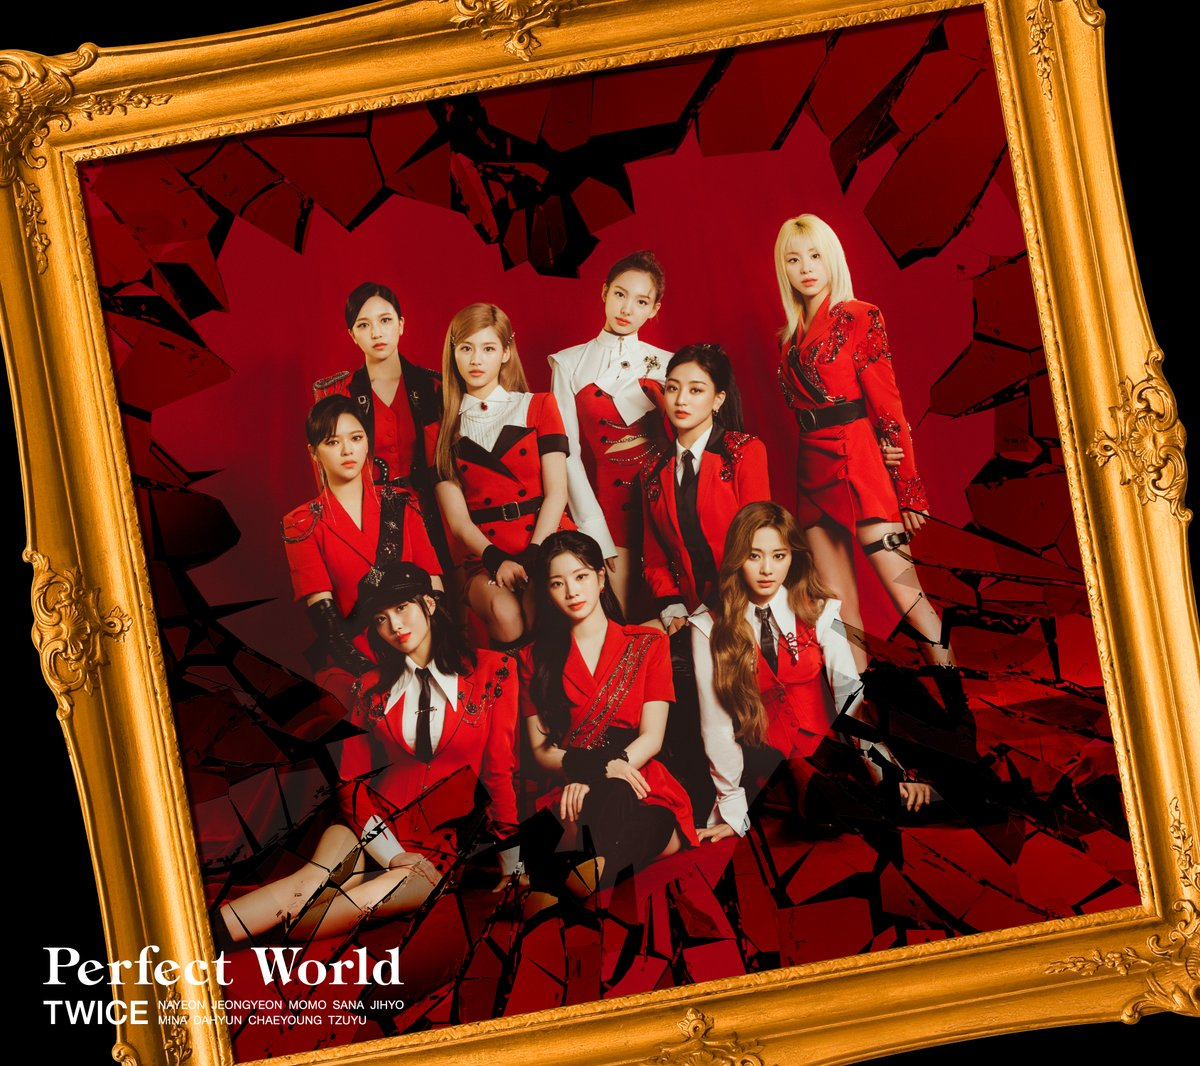 TWICE JAPAN OFFICIALさんの投稿画像